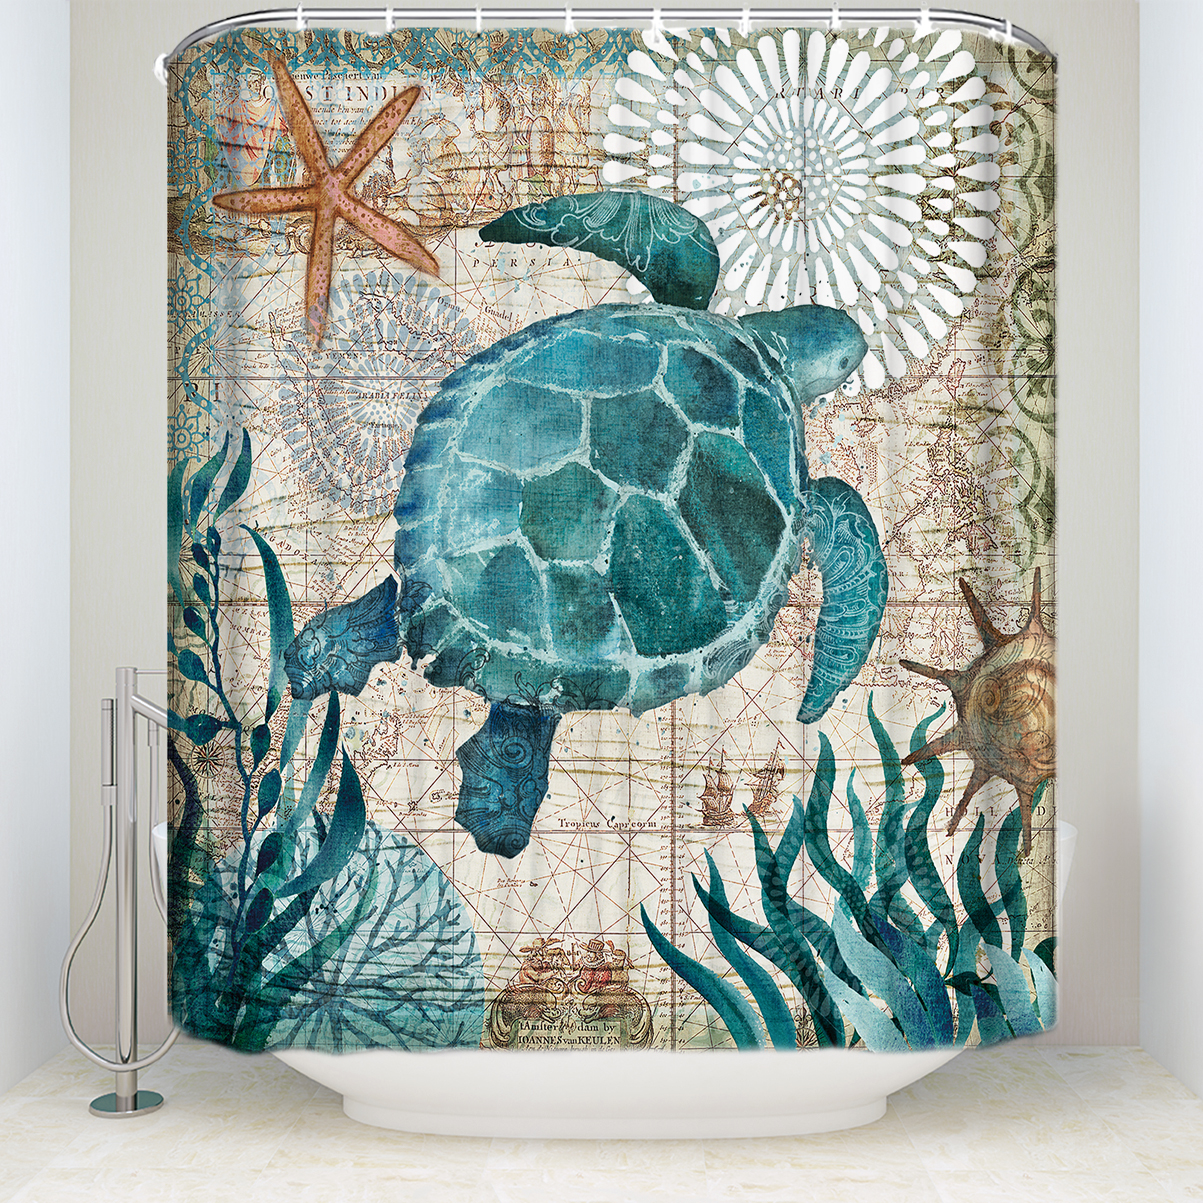 Us 6 49 35 Off Fabric Shower Curtain Sea Turtle Home Decor Bathroom Accessories Waterproof Polyester Whale Octopus Seahorse Bath Curtains In Shower